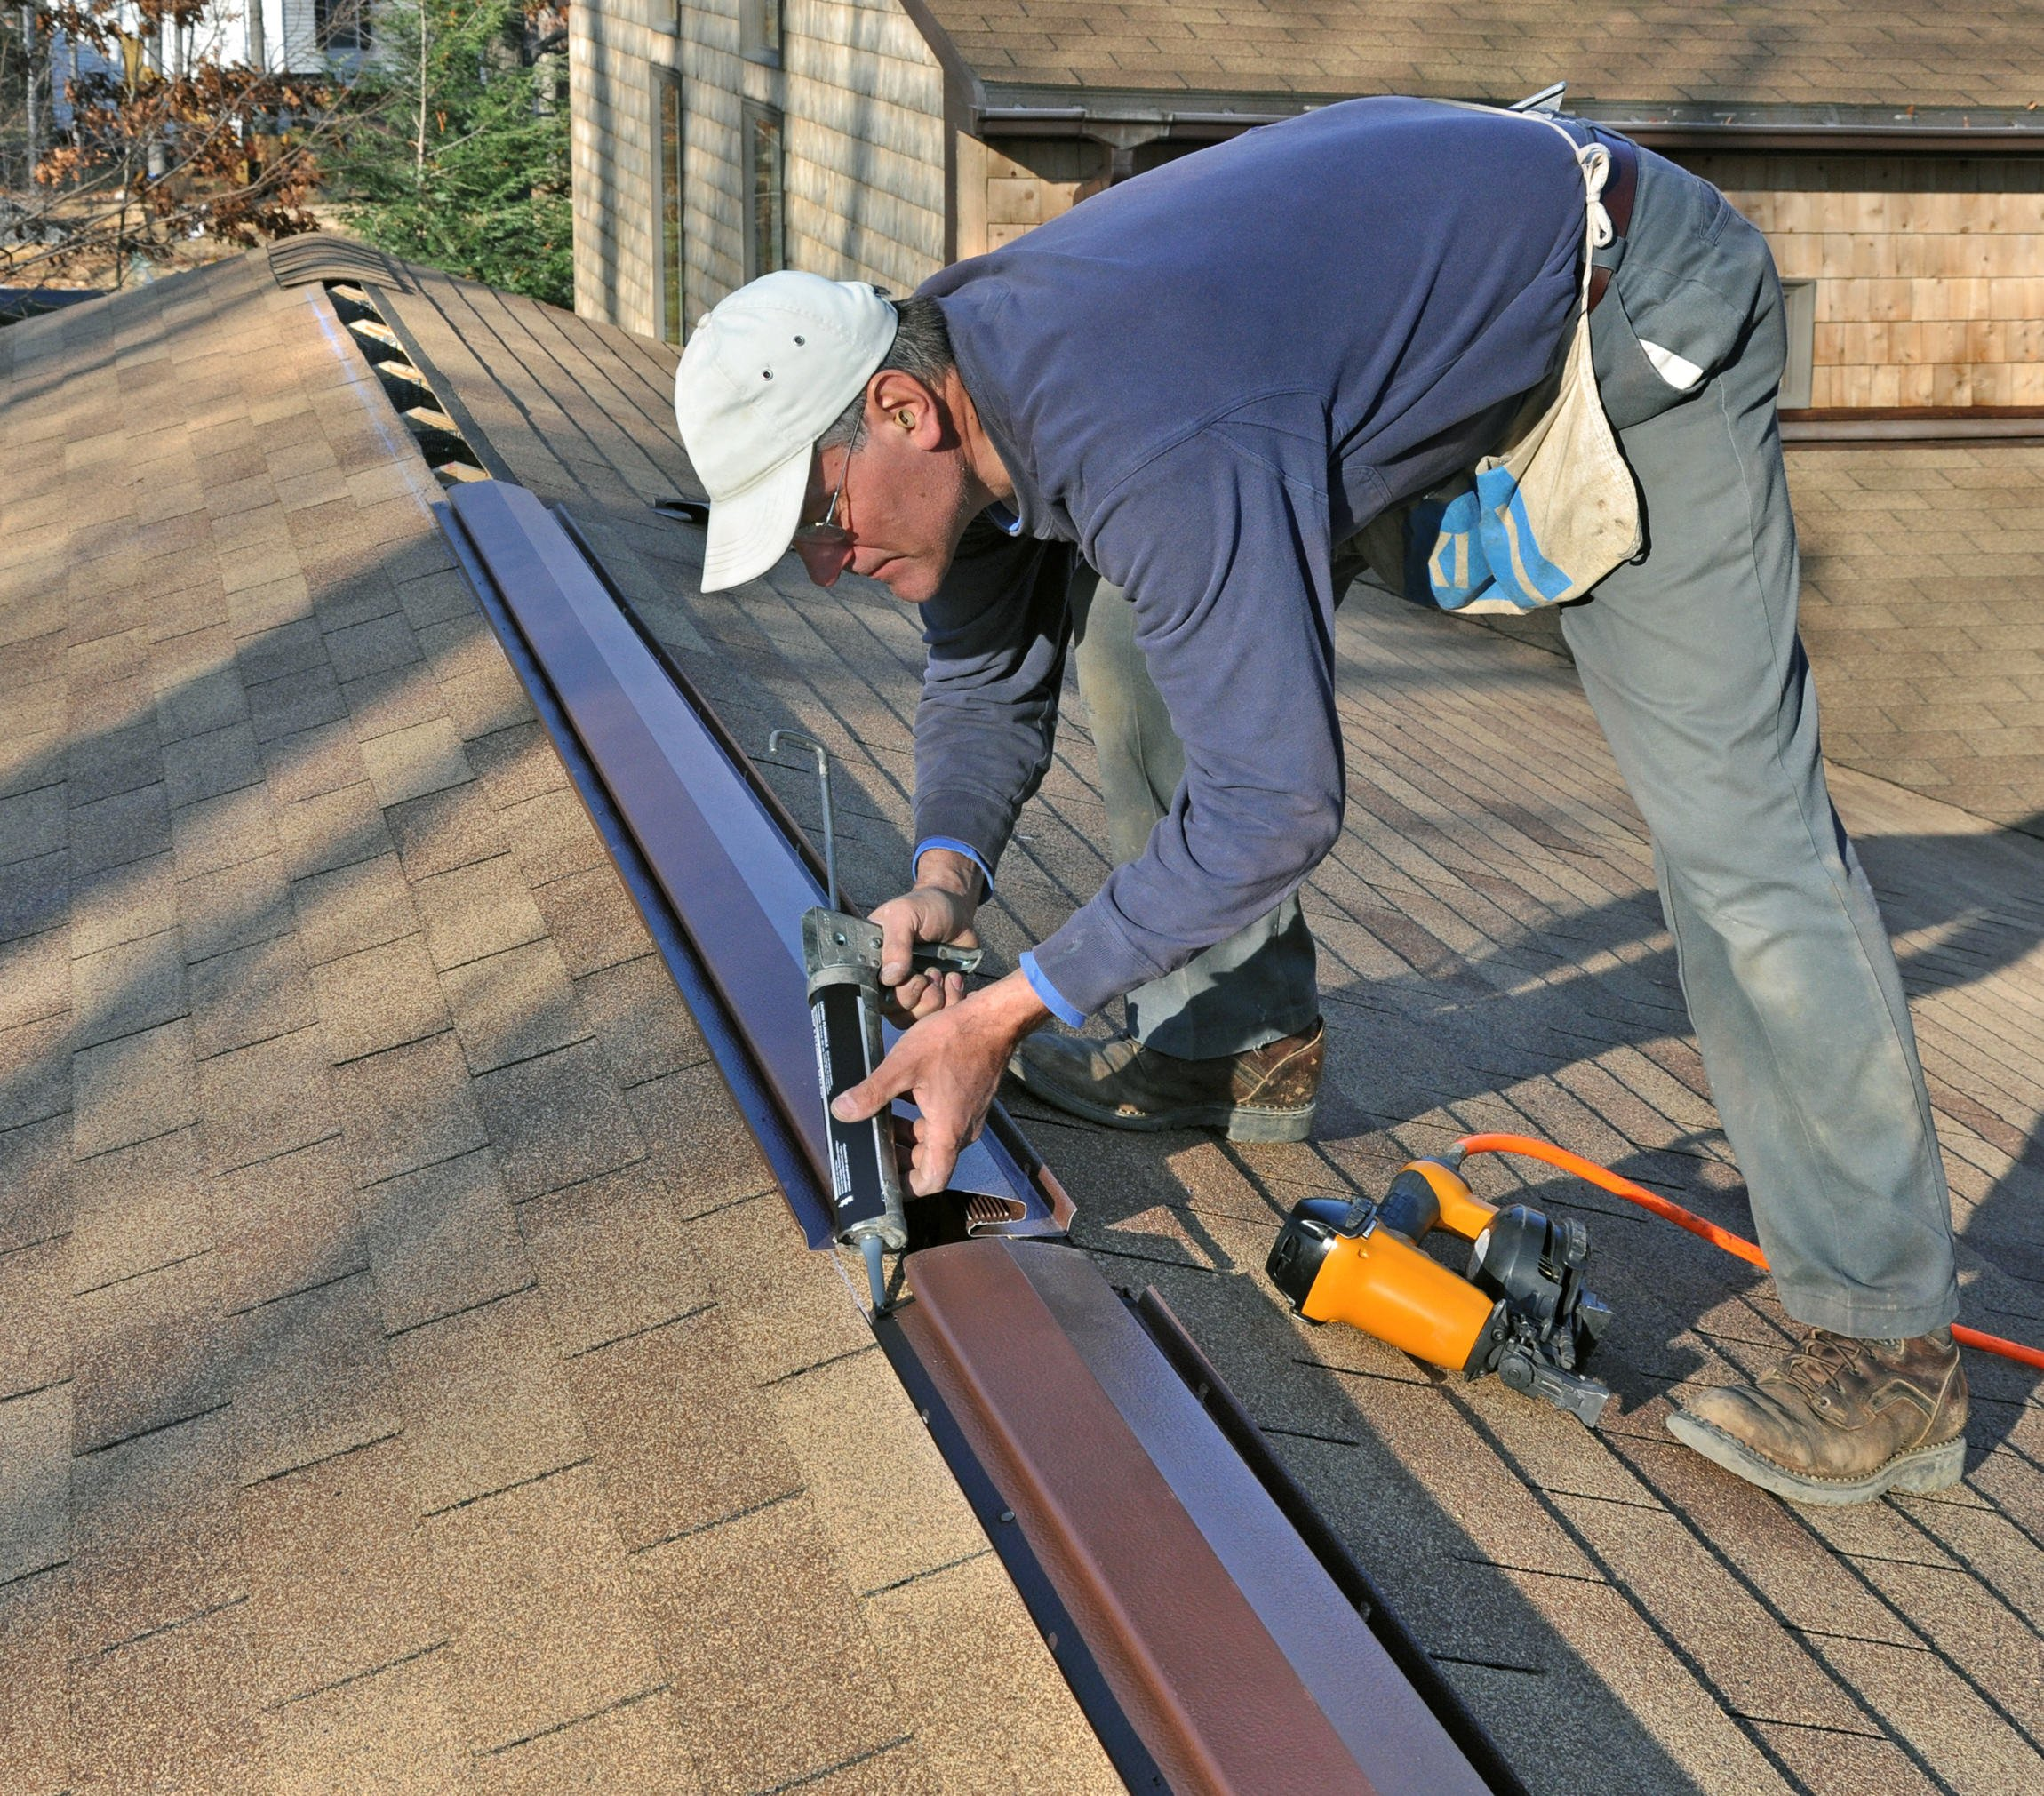 Carpenter applying caulk to ridge vent